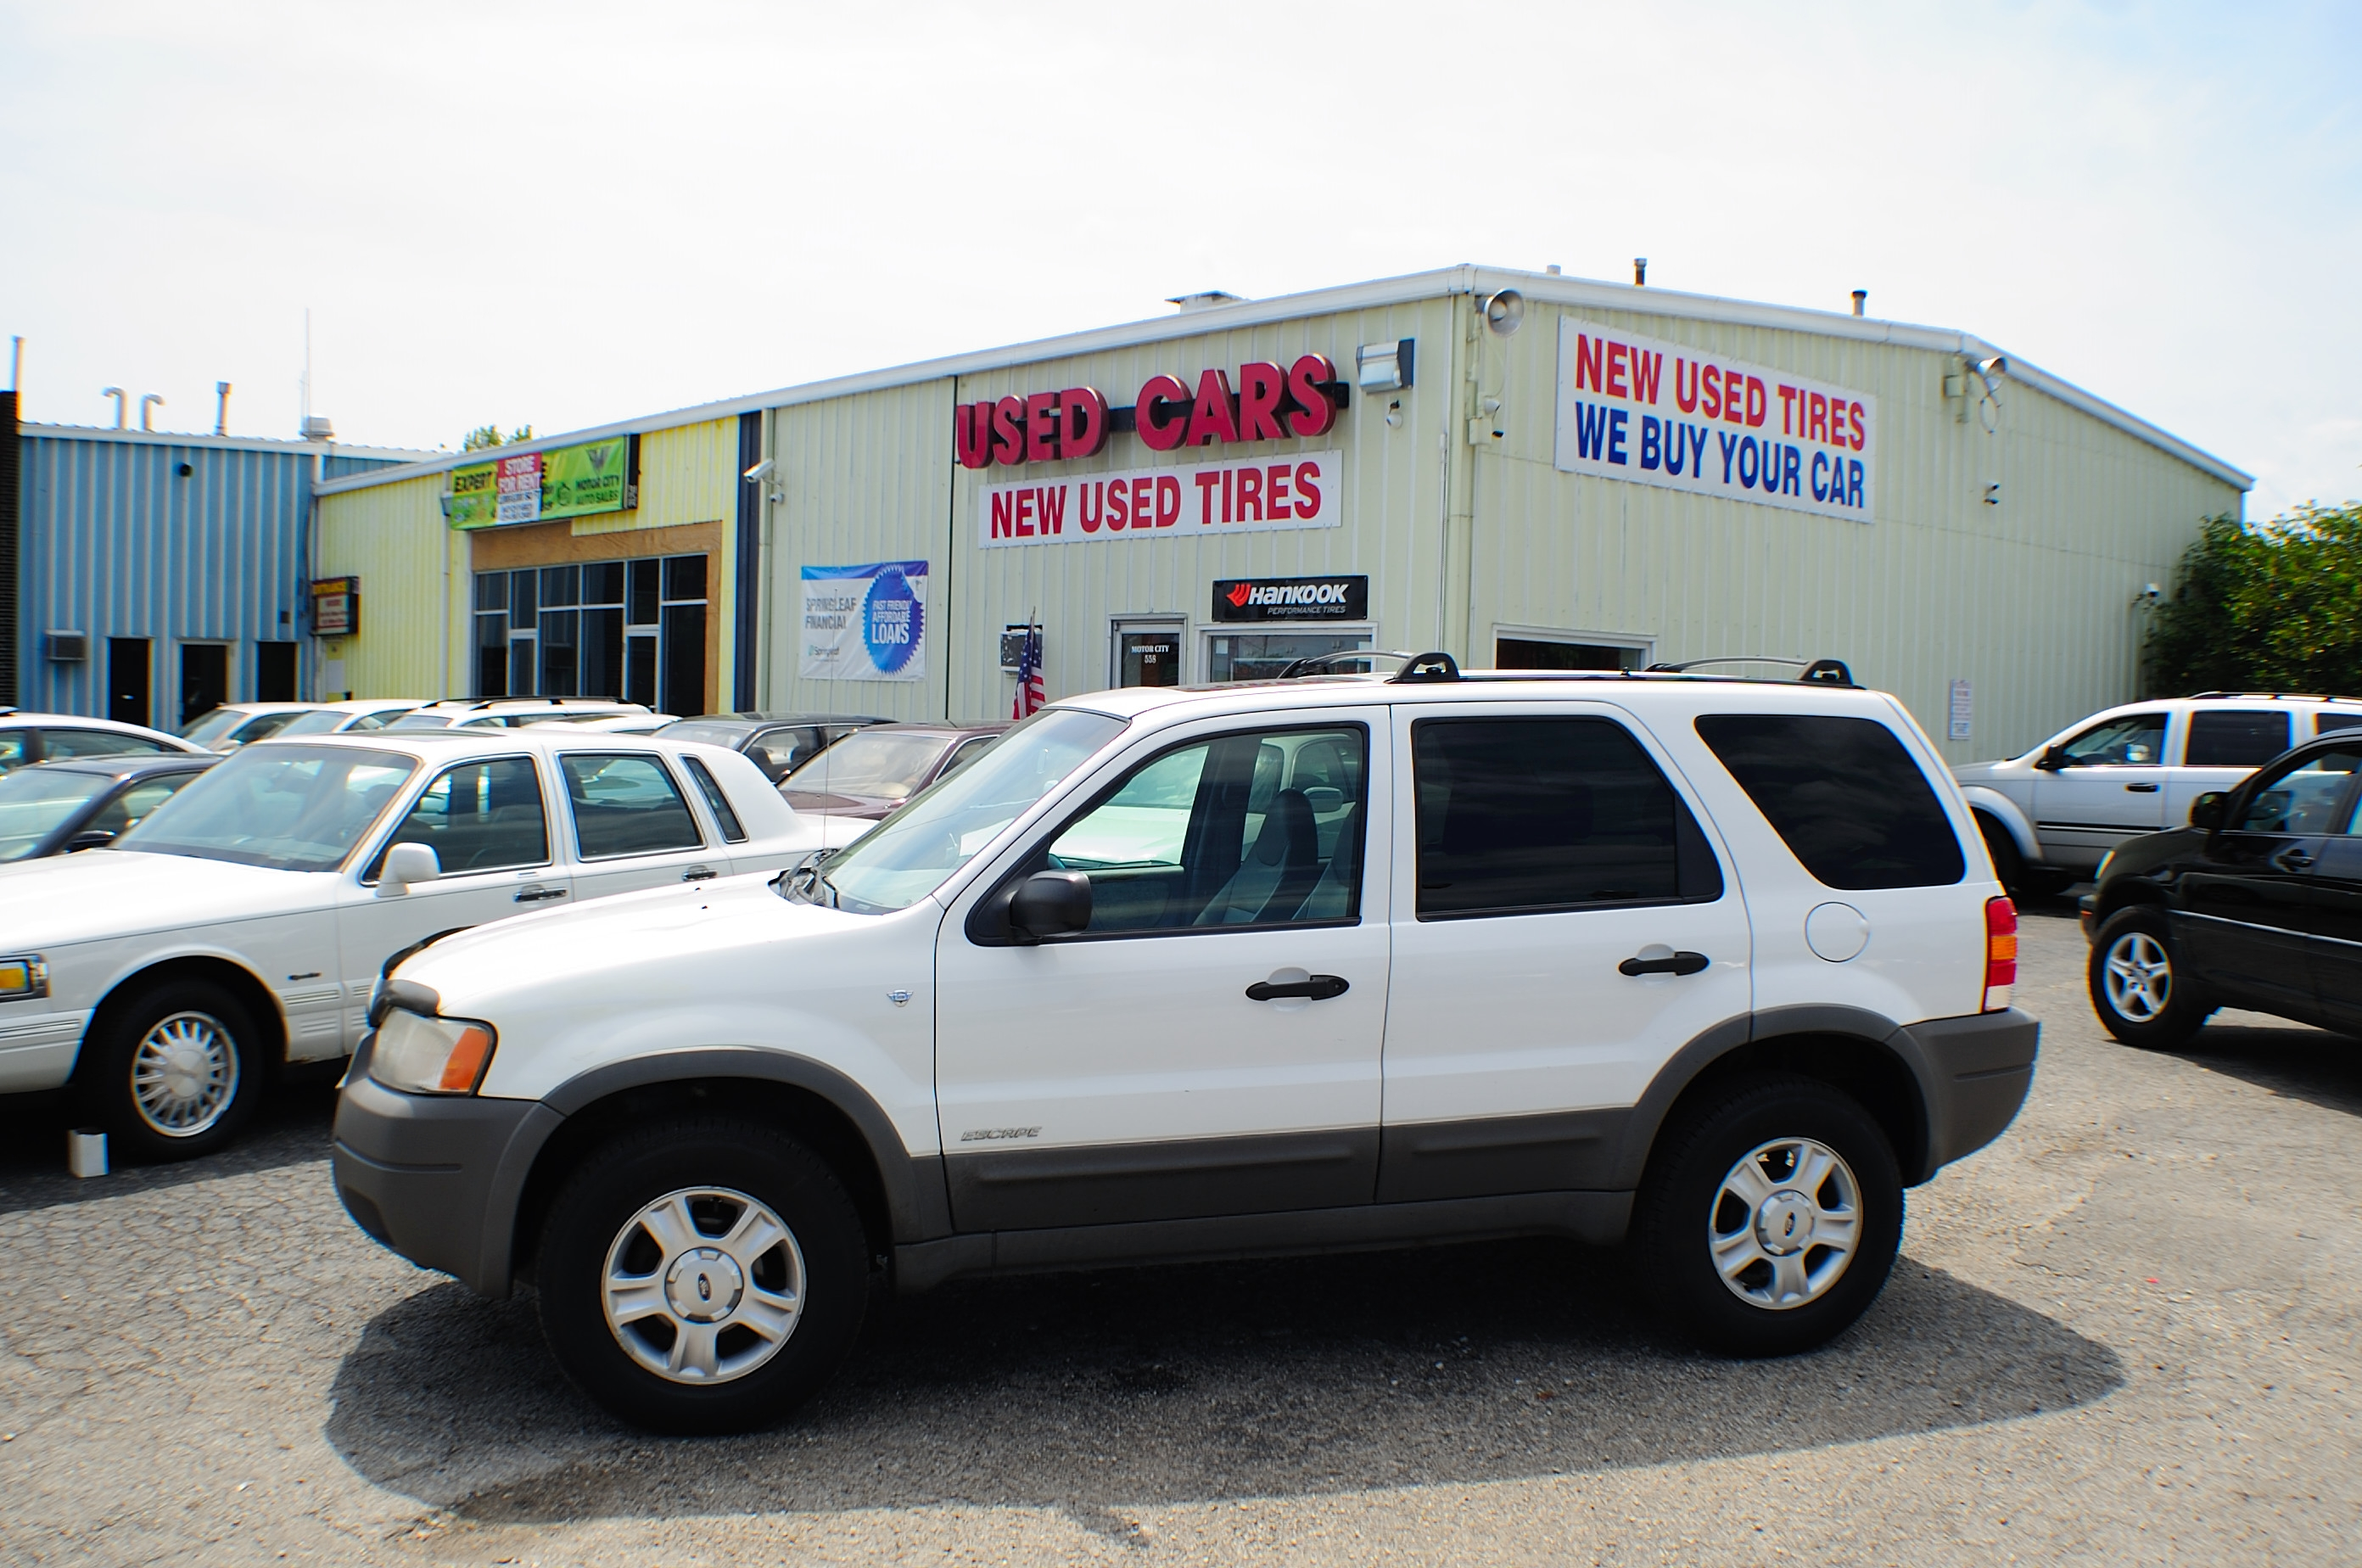 2001 Ford Escape XLT White 4x4 SUV Used Car Sale Antioch Grayslake